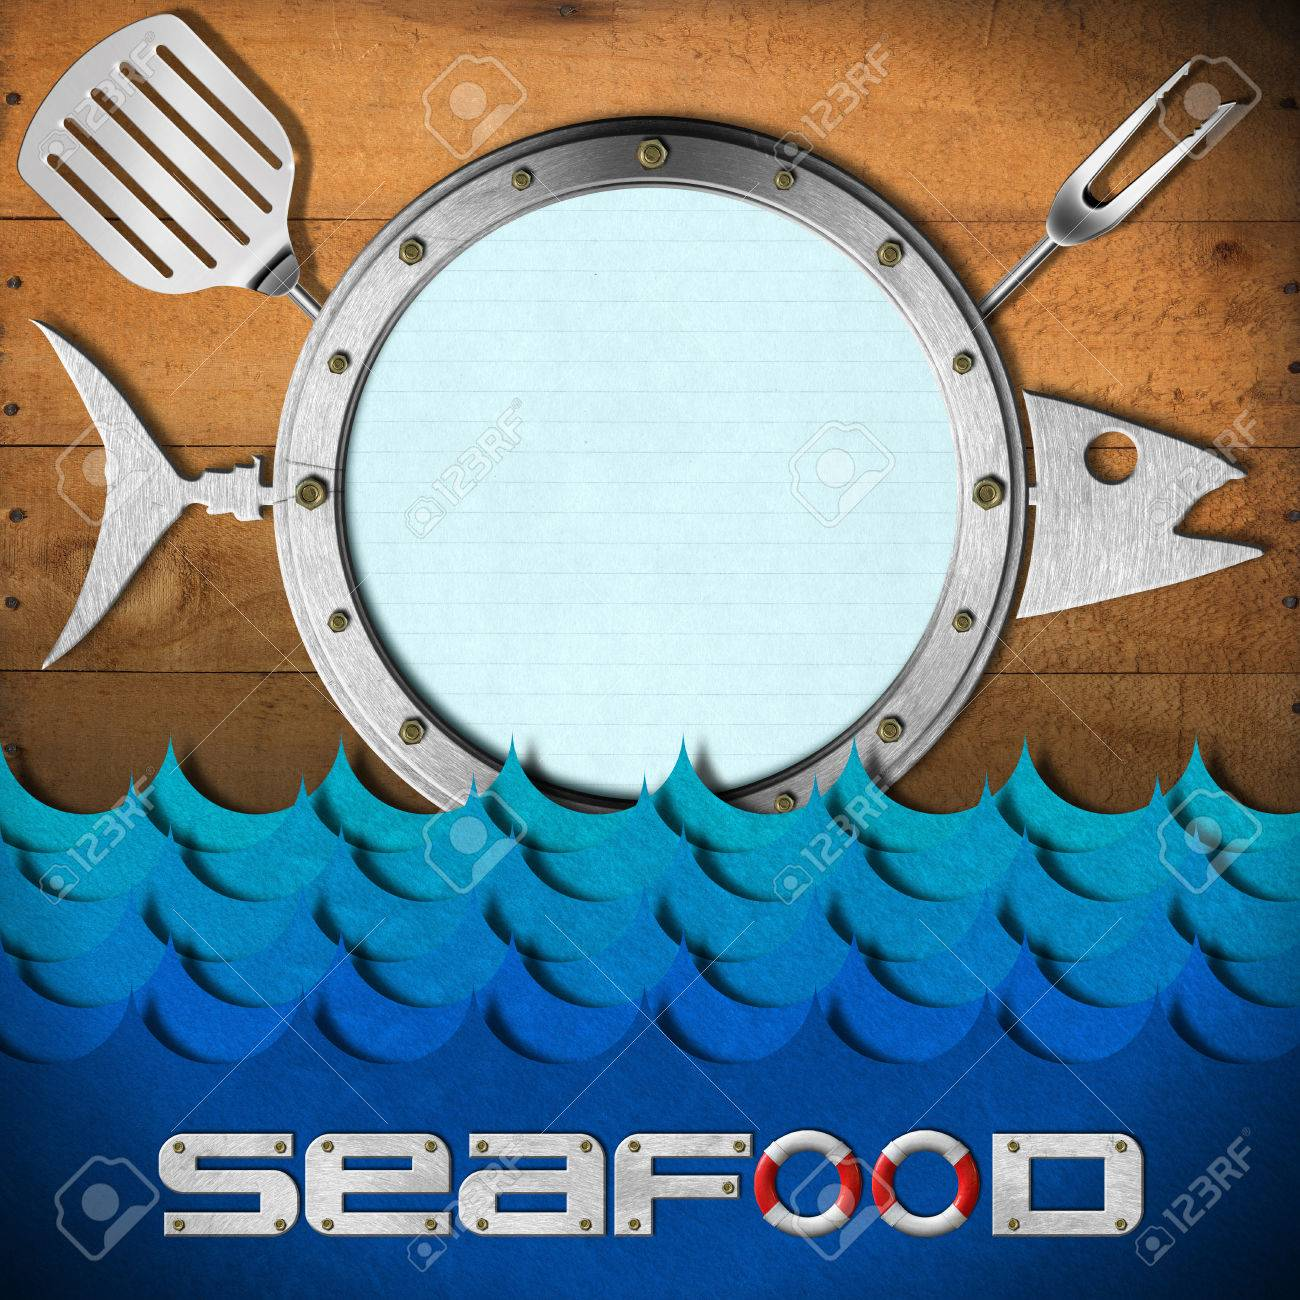 Restaurant Seafood Menu With Metal Porthole, Kitchen Utensils ...